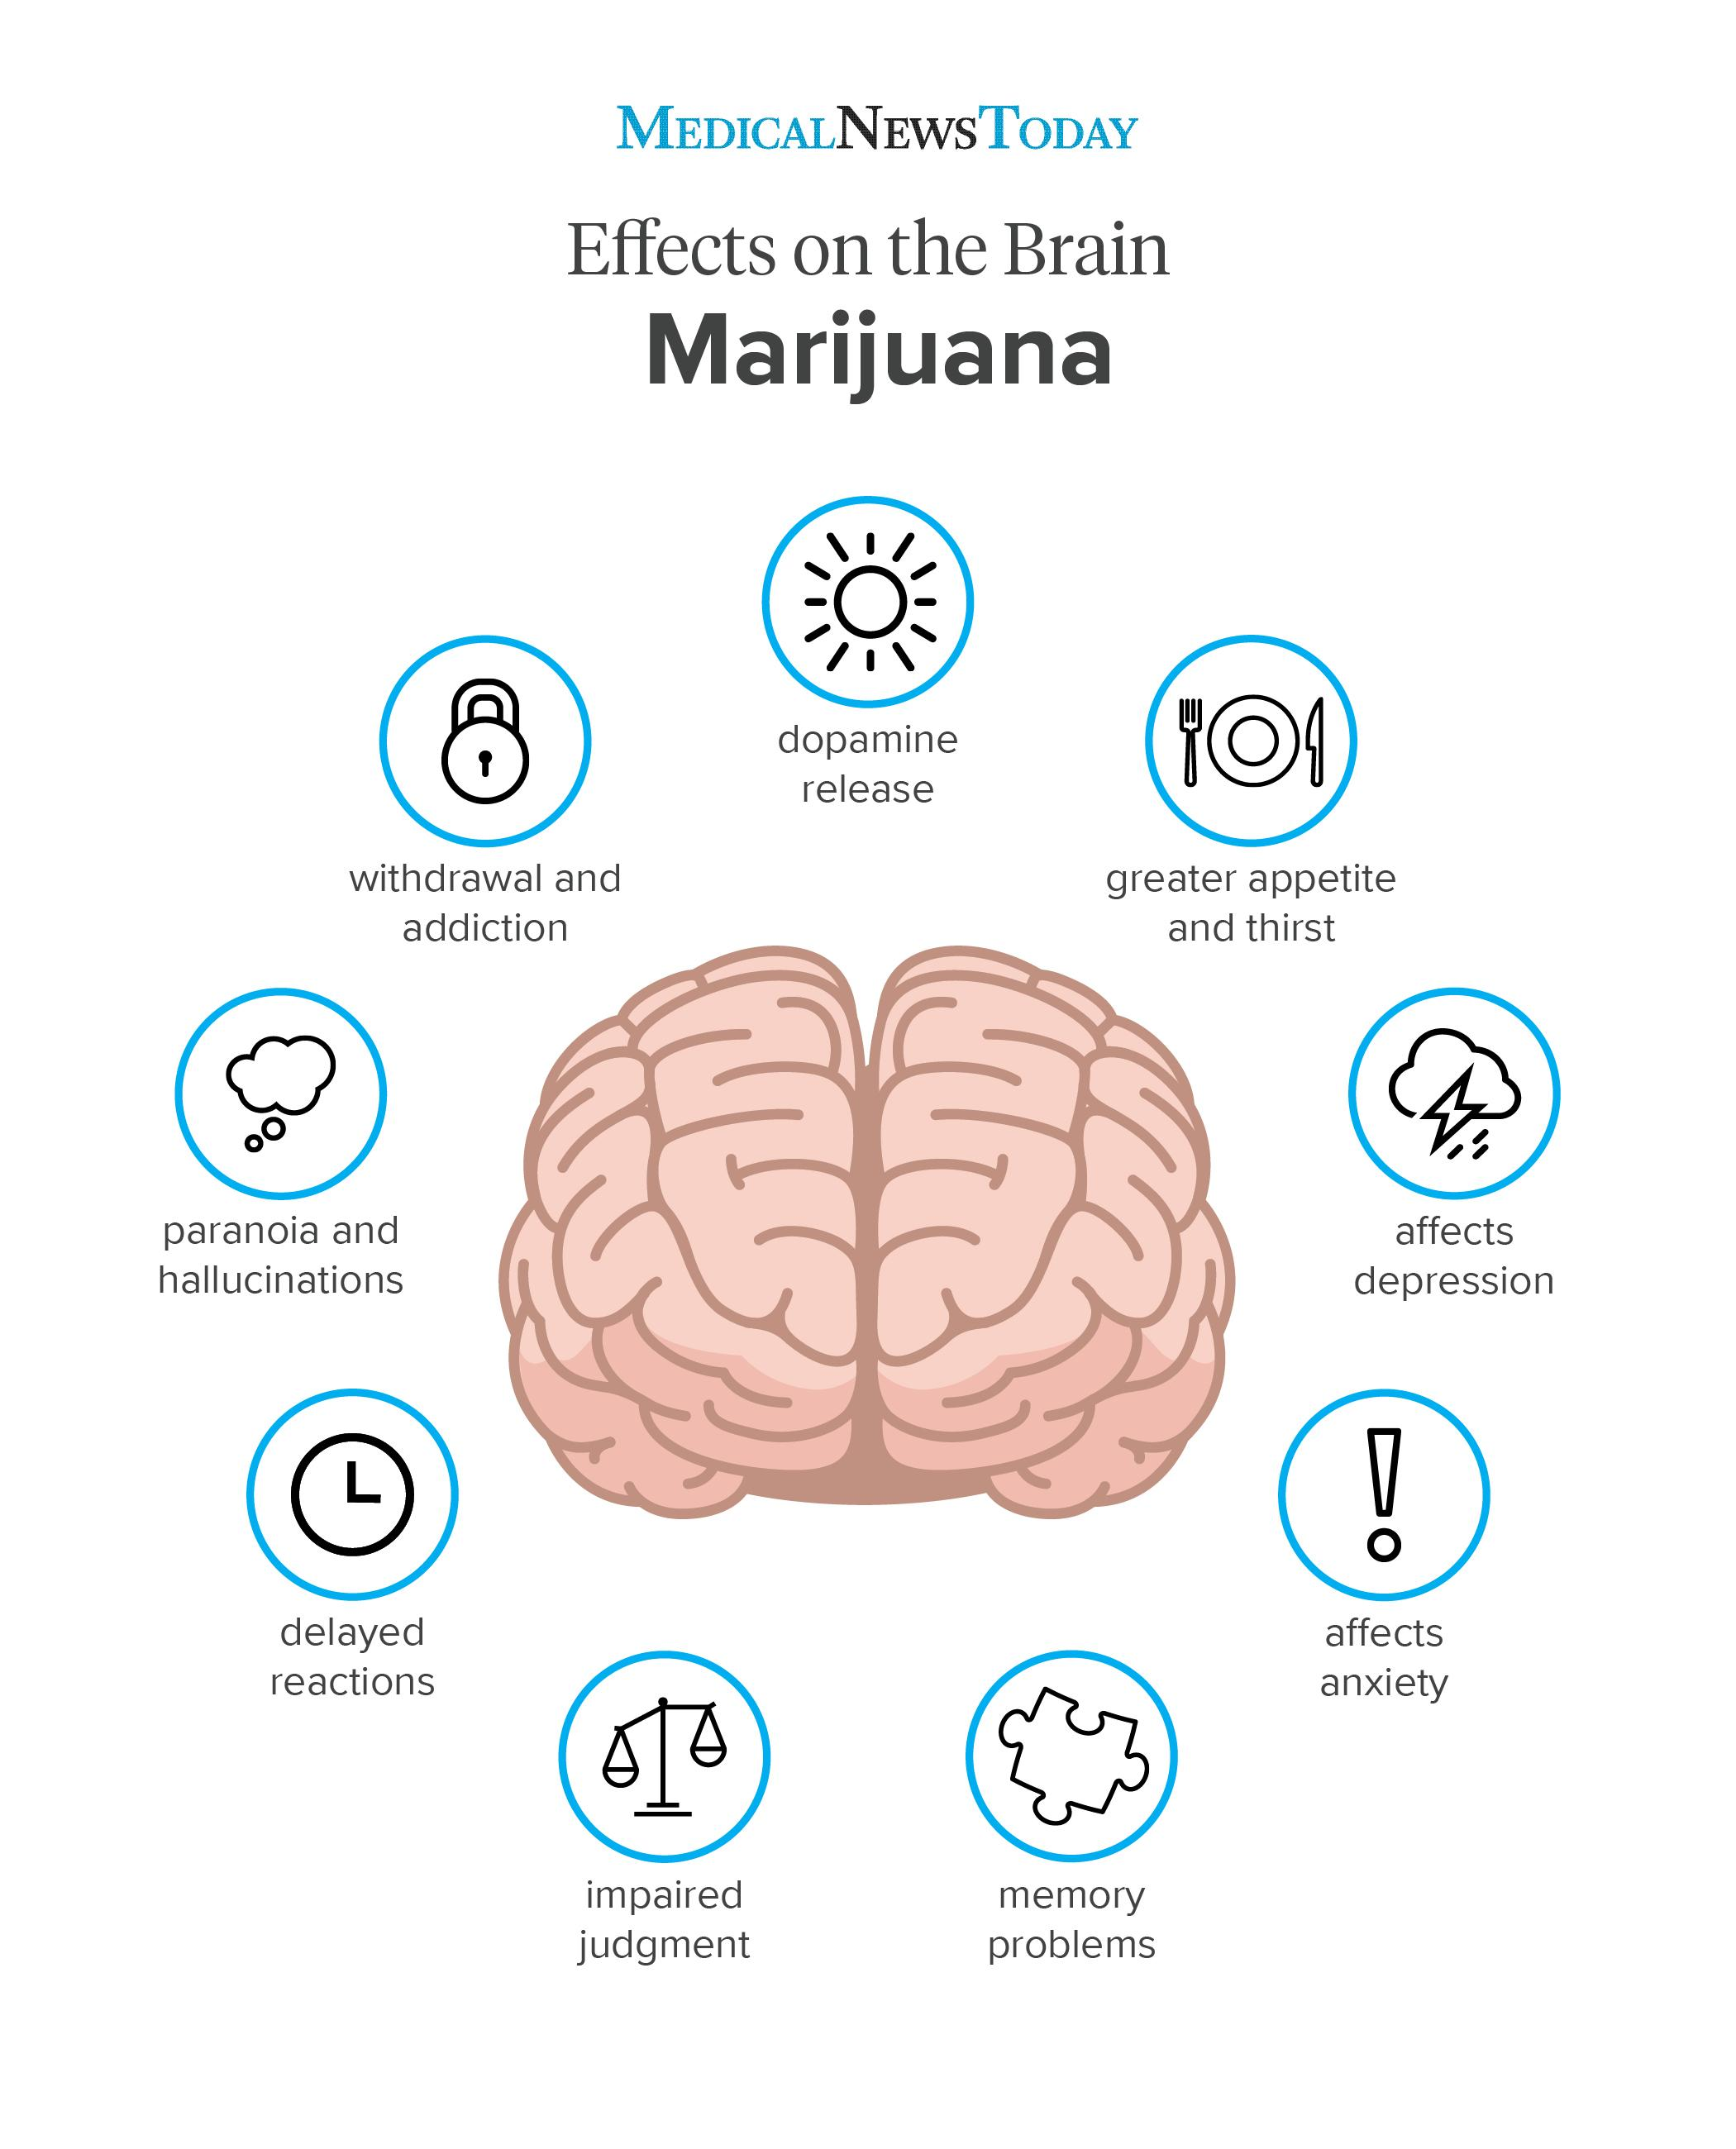 an infographic of a marijuana effects on the brain